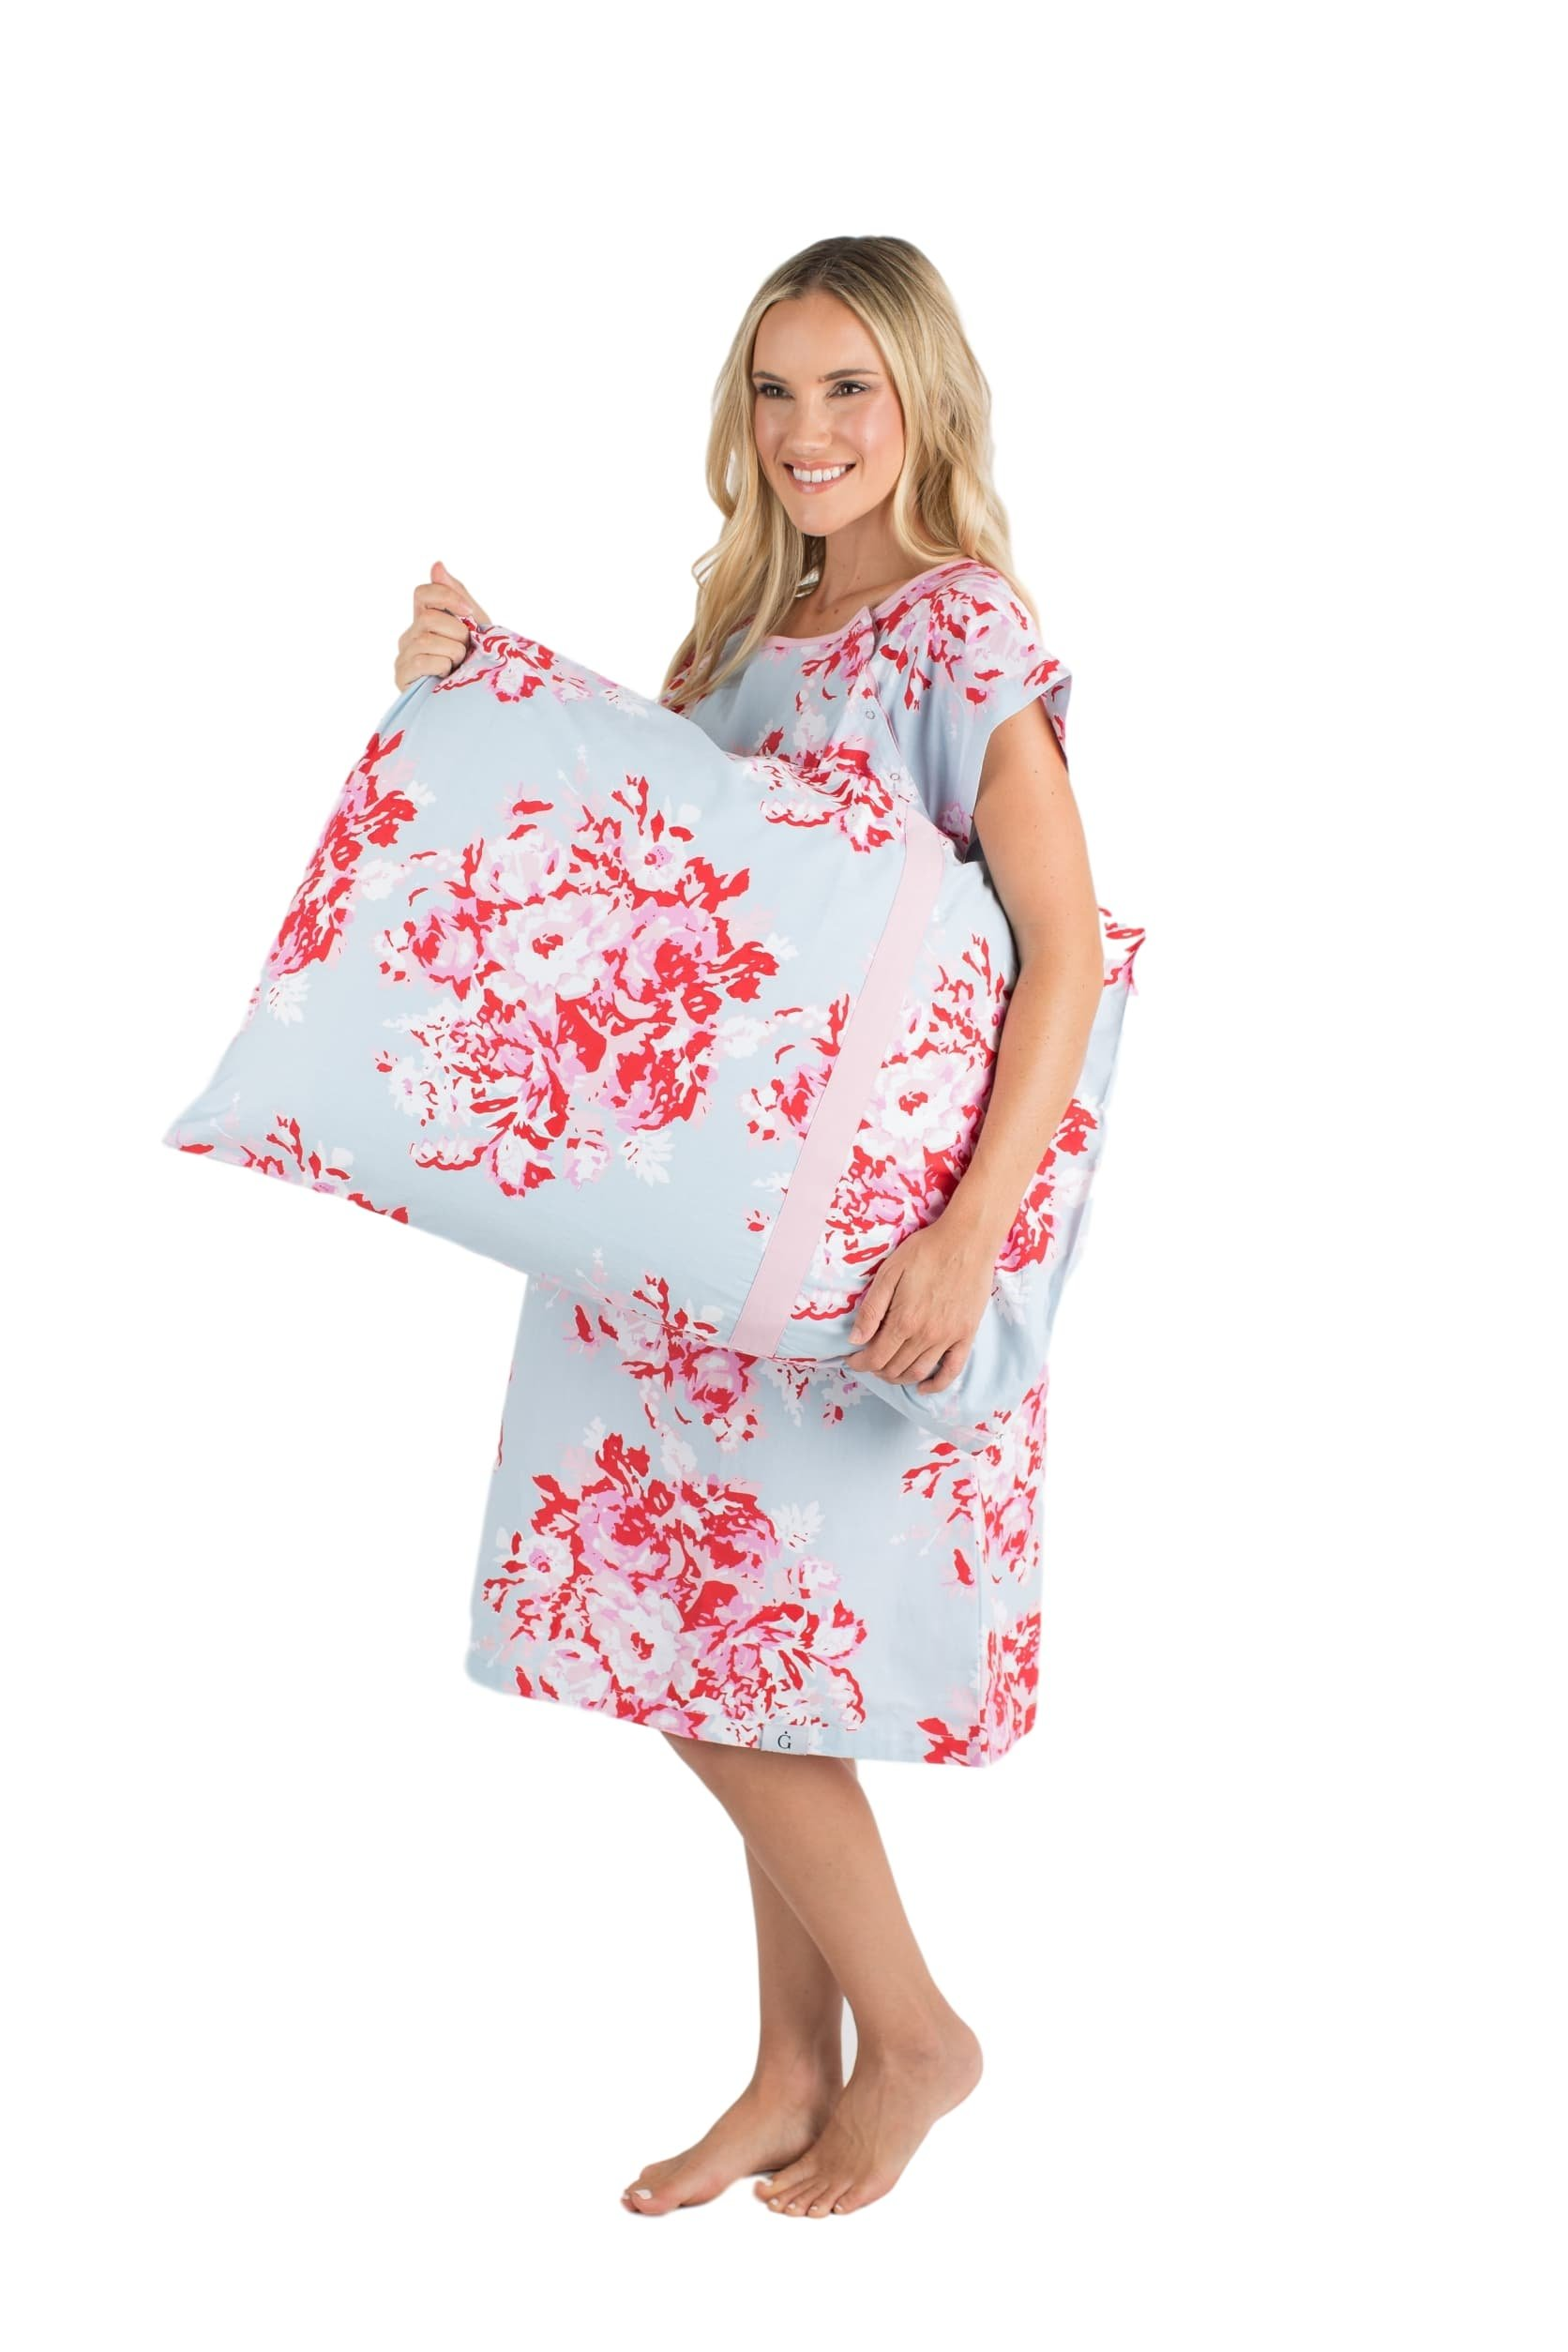 Gownies - Labor and Delivery Maternity Hospital Gown and Pillowcase ...